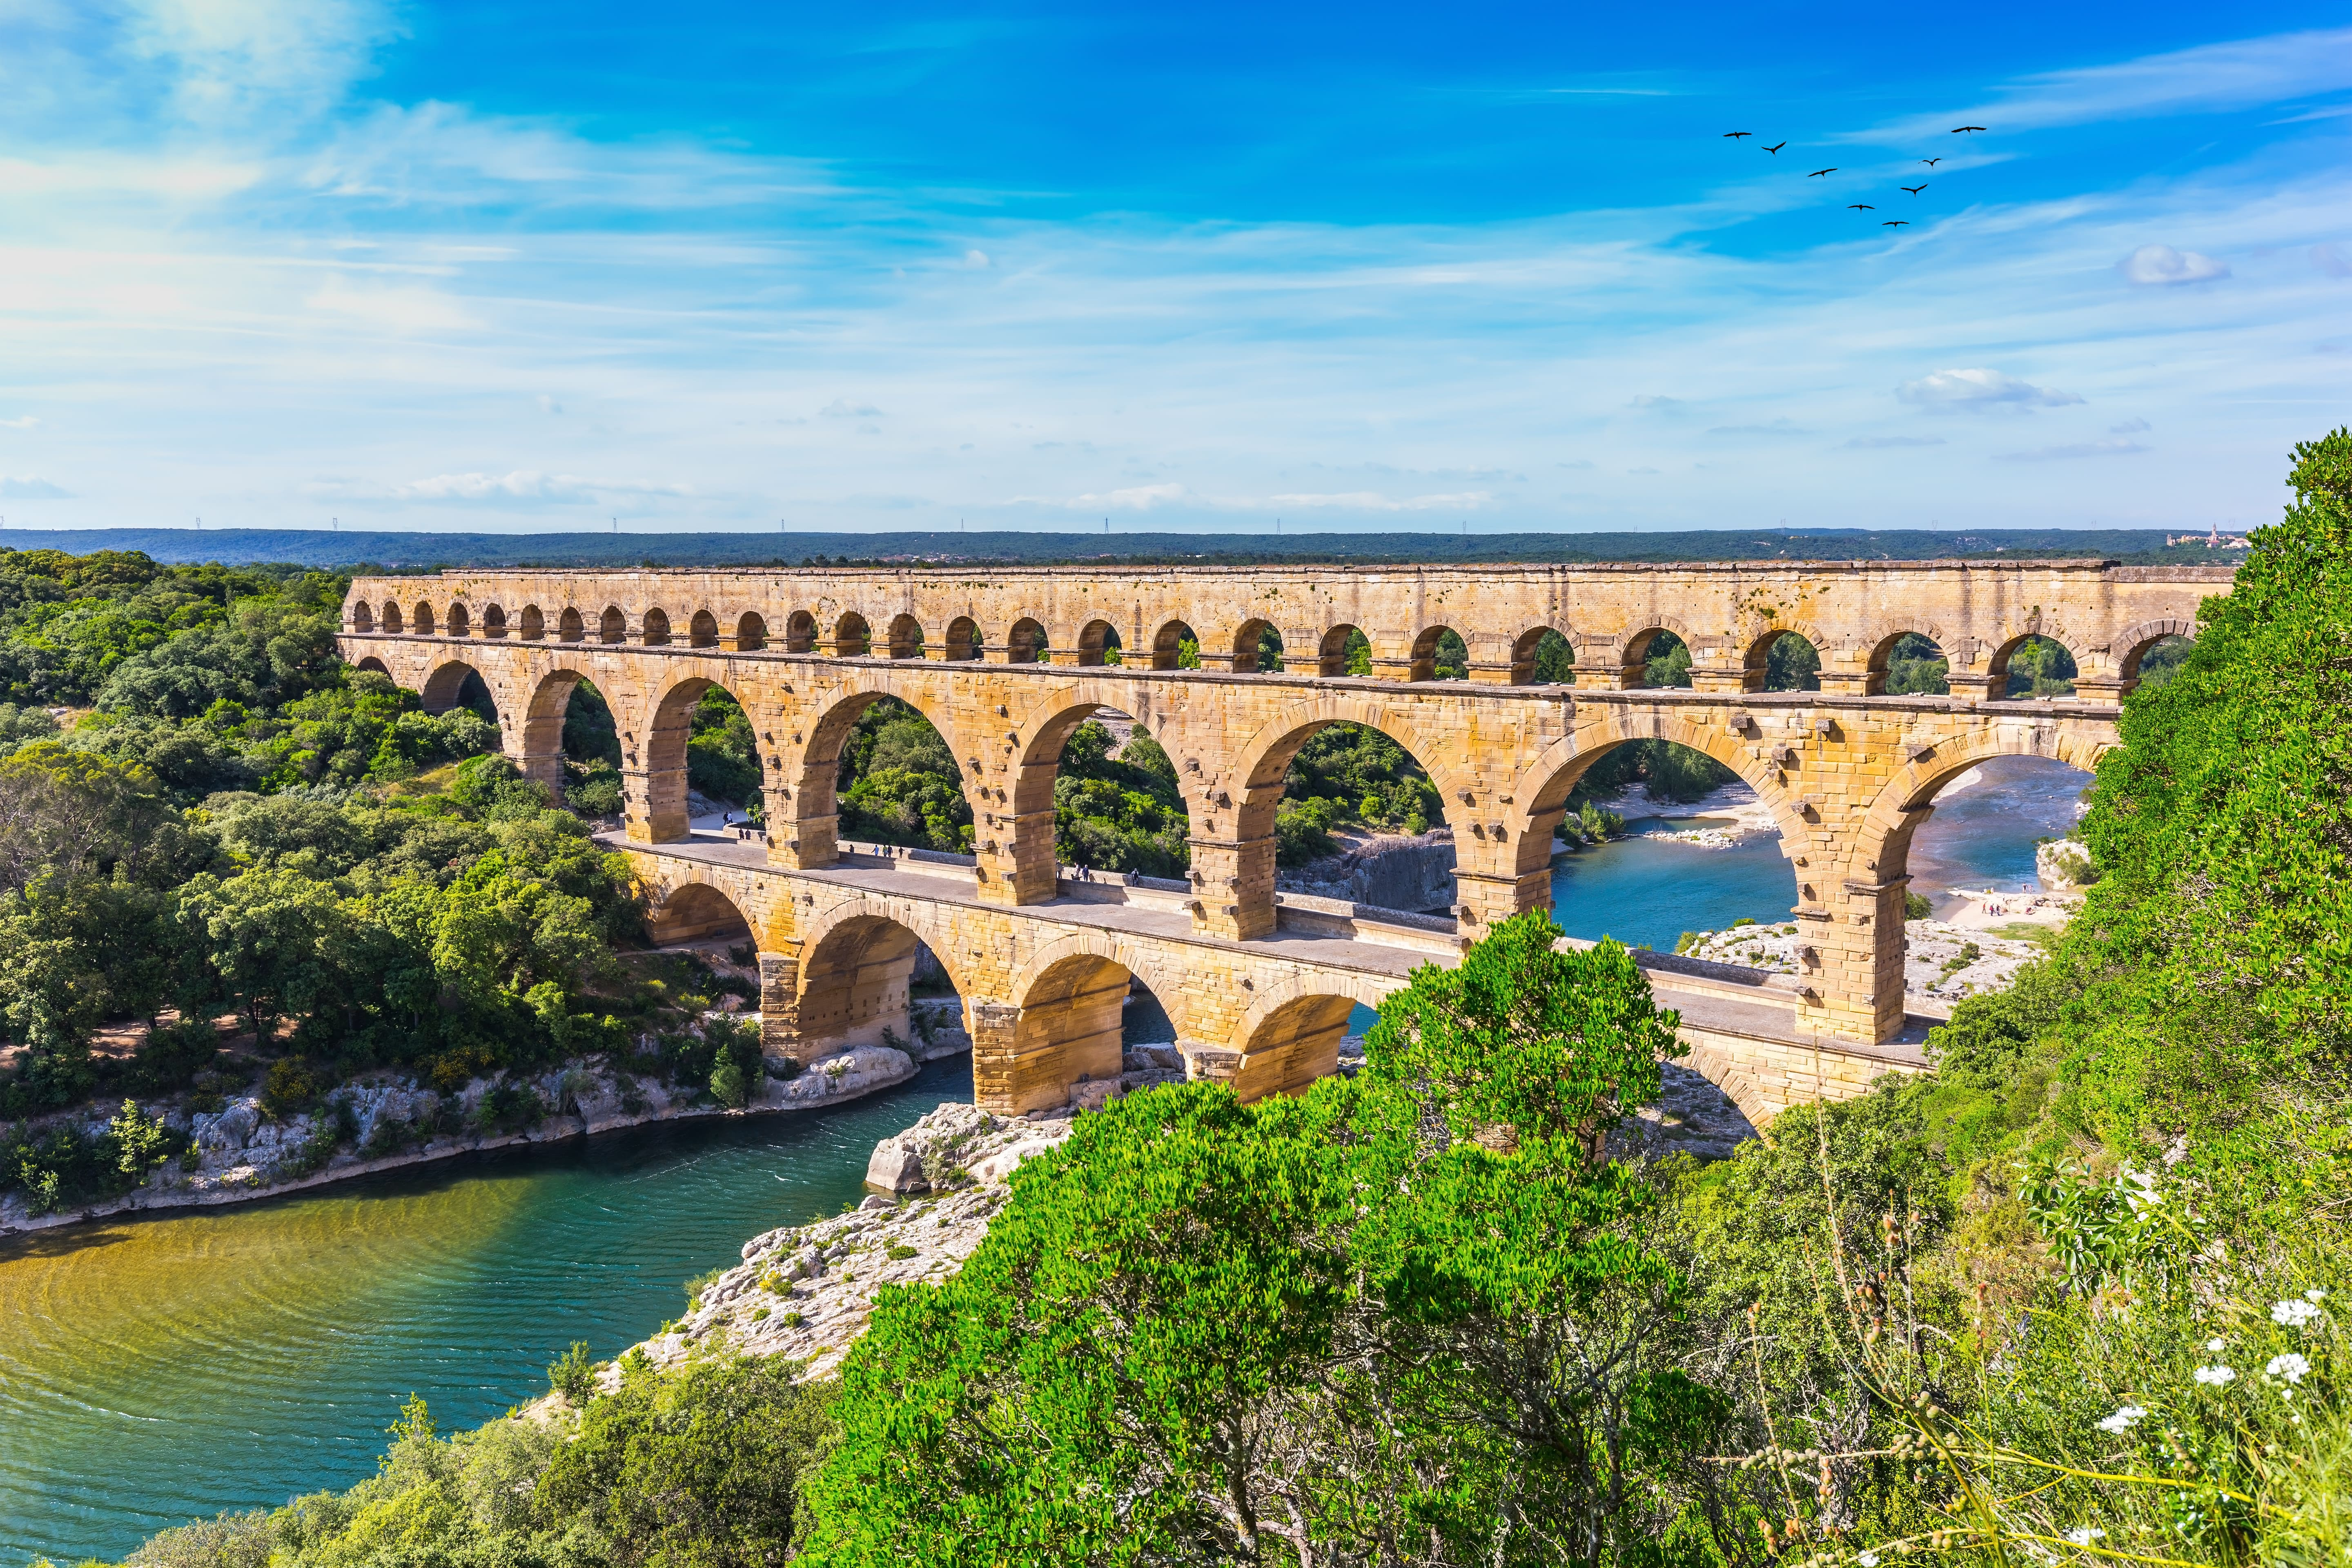 Have a Picnic with a Backdrop of the Pont du Gard